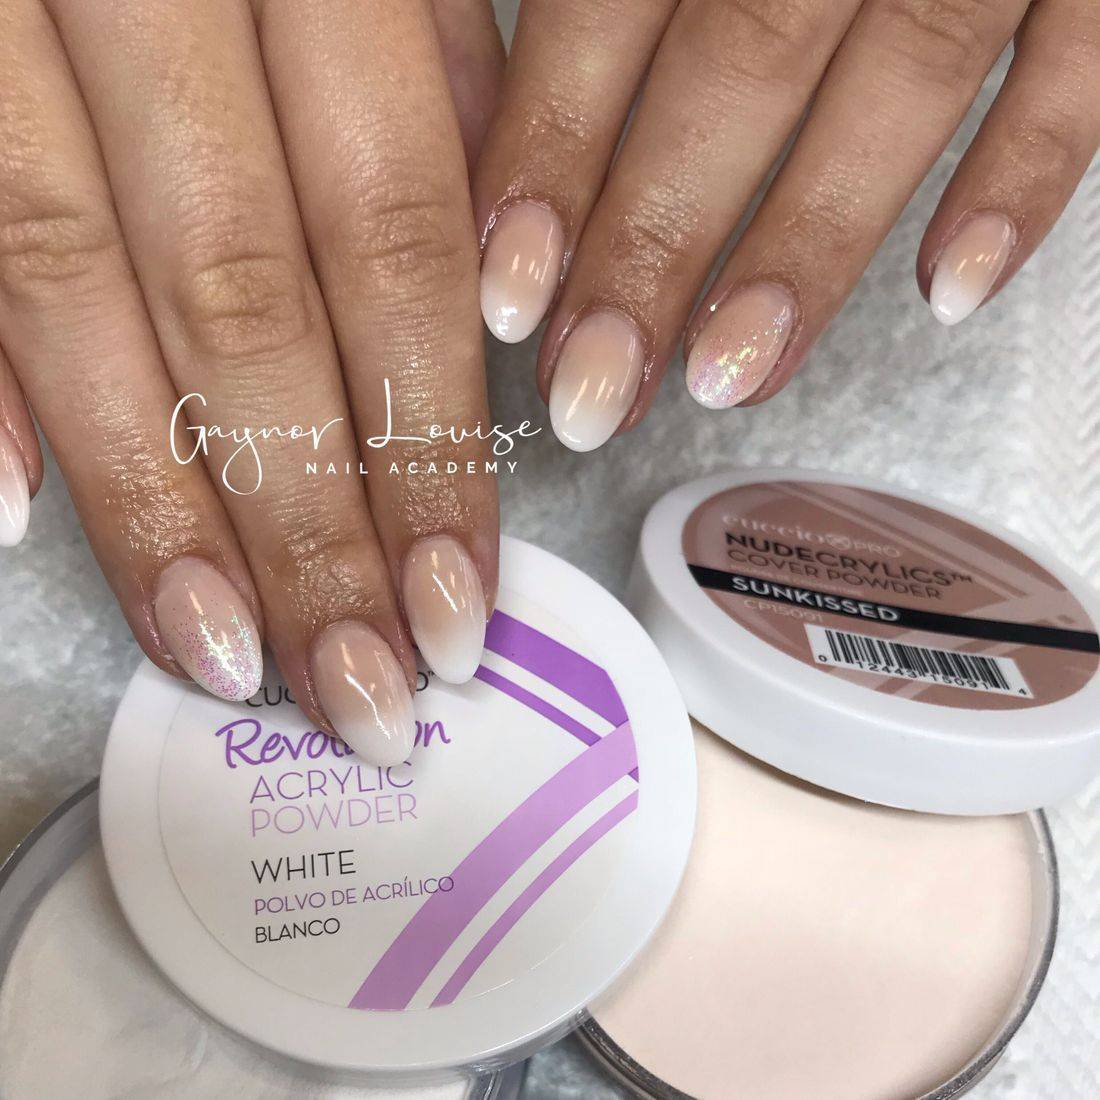 acrylic nail training, gaynor louise nail academy, nail training bury north west, cuccio nail courses, french ombre nails. baby boomer nails